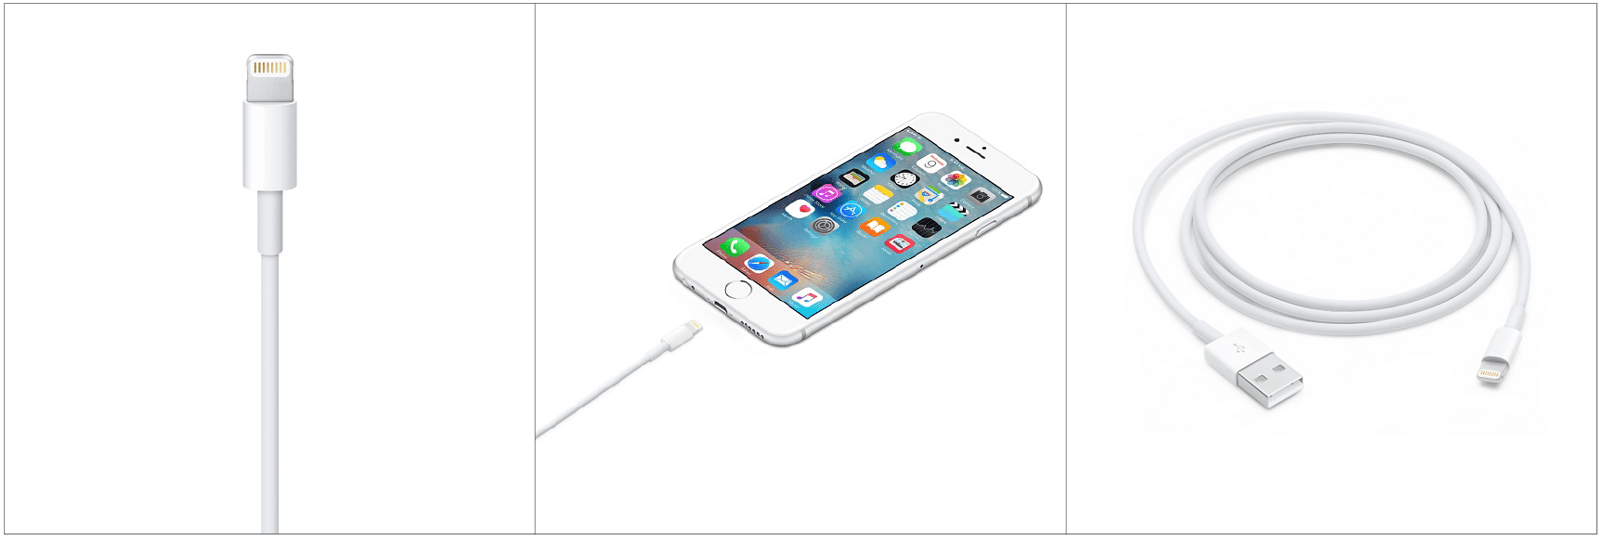 hight resolution of so carrying a digital signal means this apple knows exactly the each and every time you insert a lightning cable to your ios devices whether it s apple or